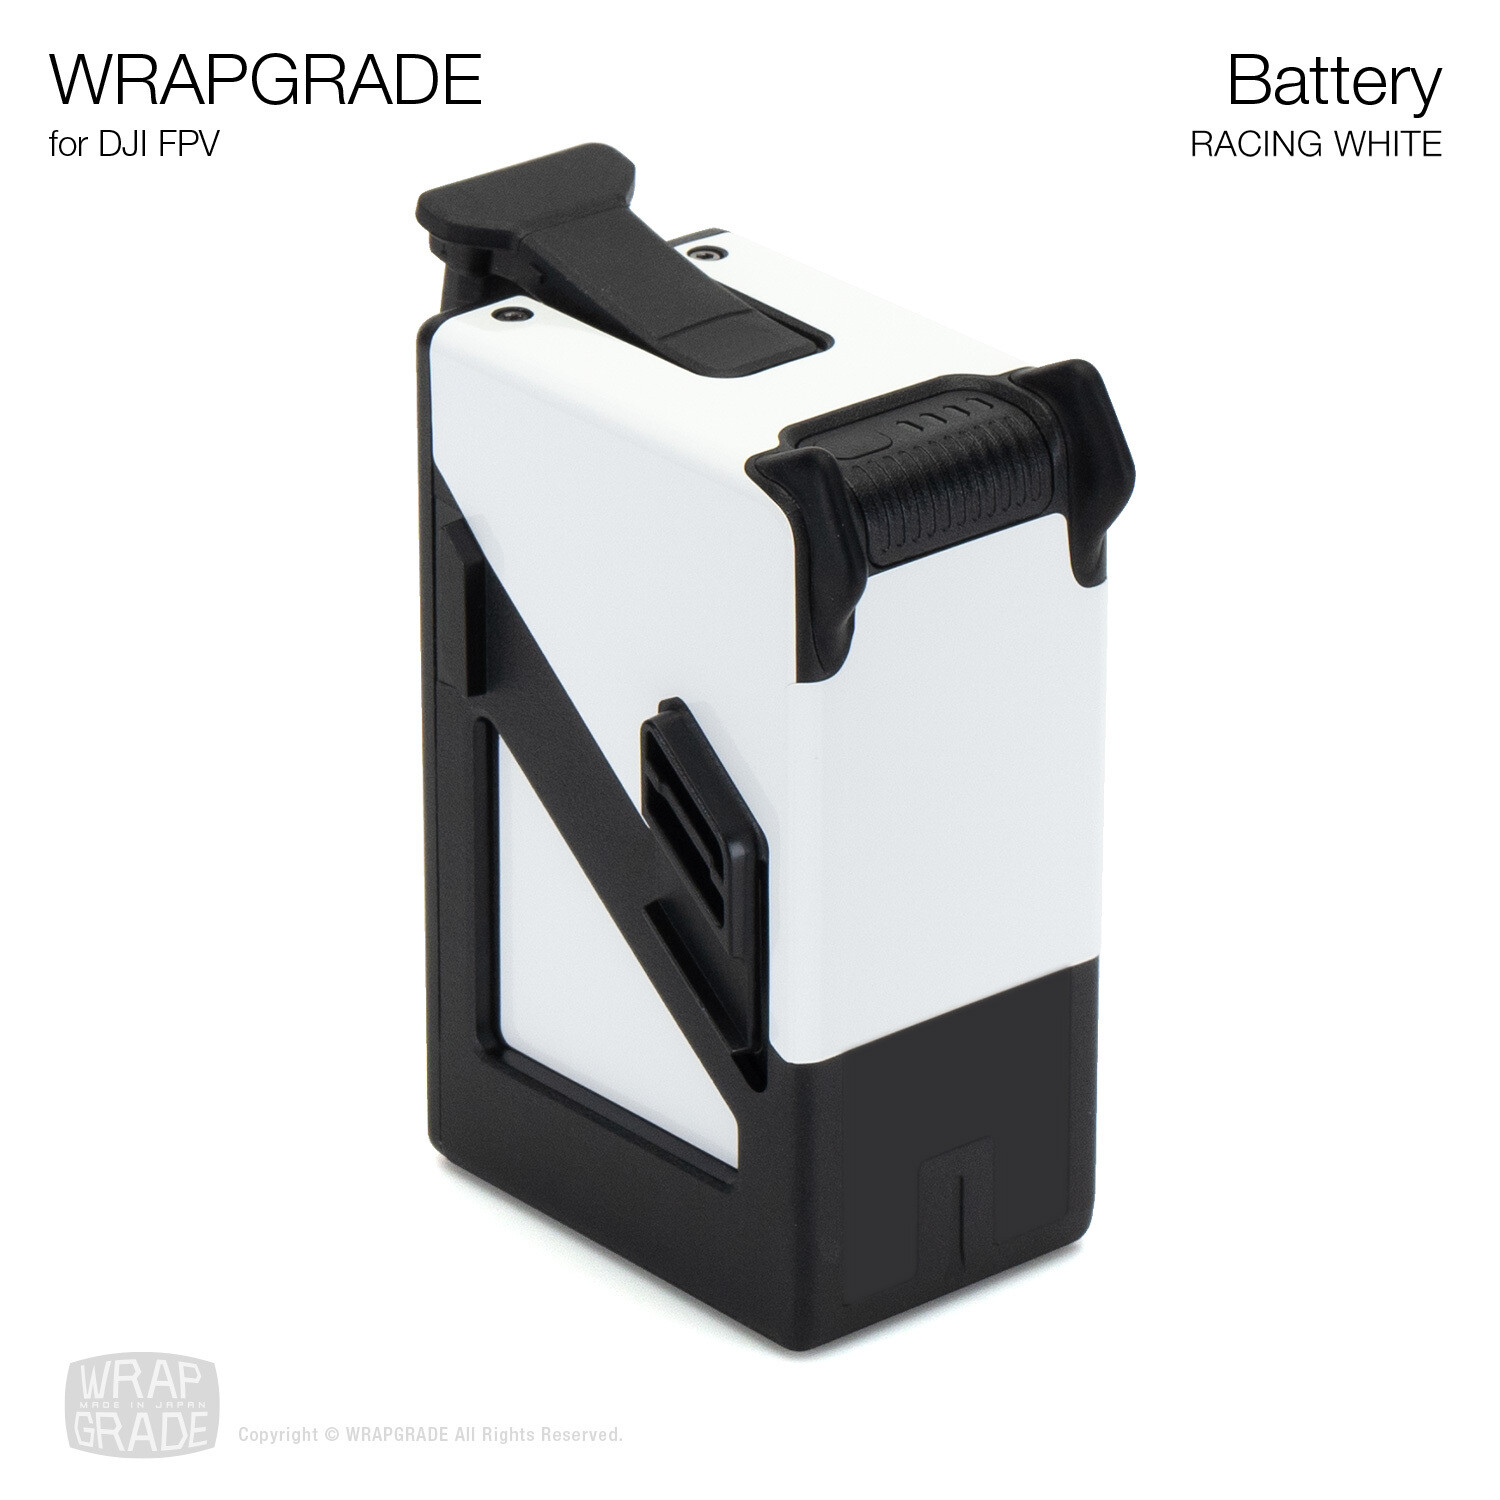 WRAPGRADE for DJI FPV | Battery [20 colors]